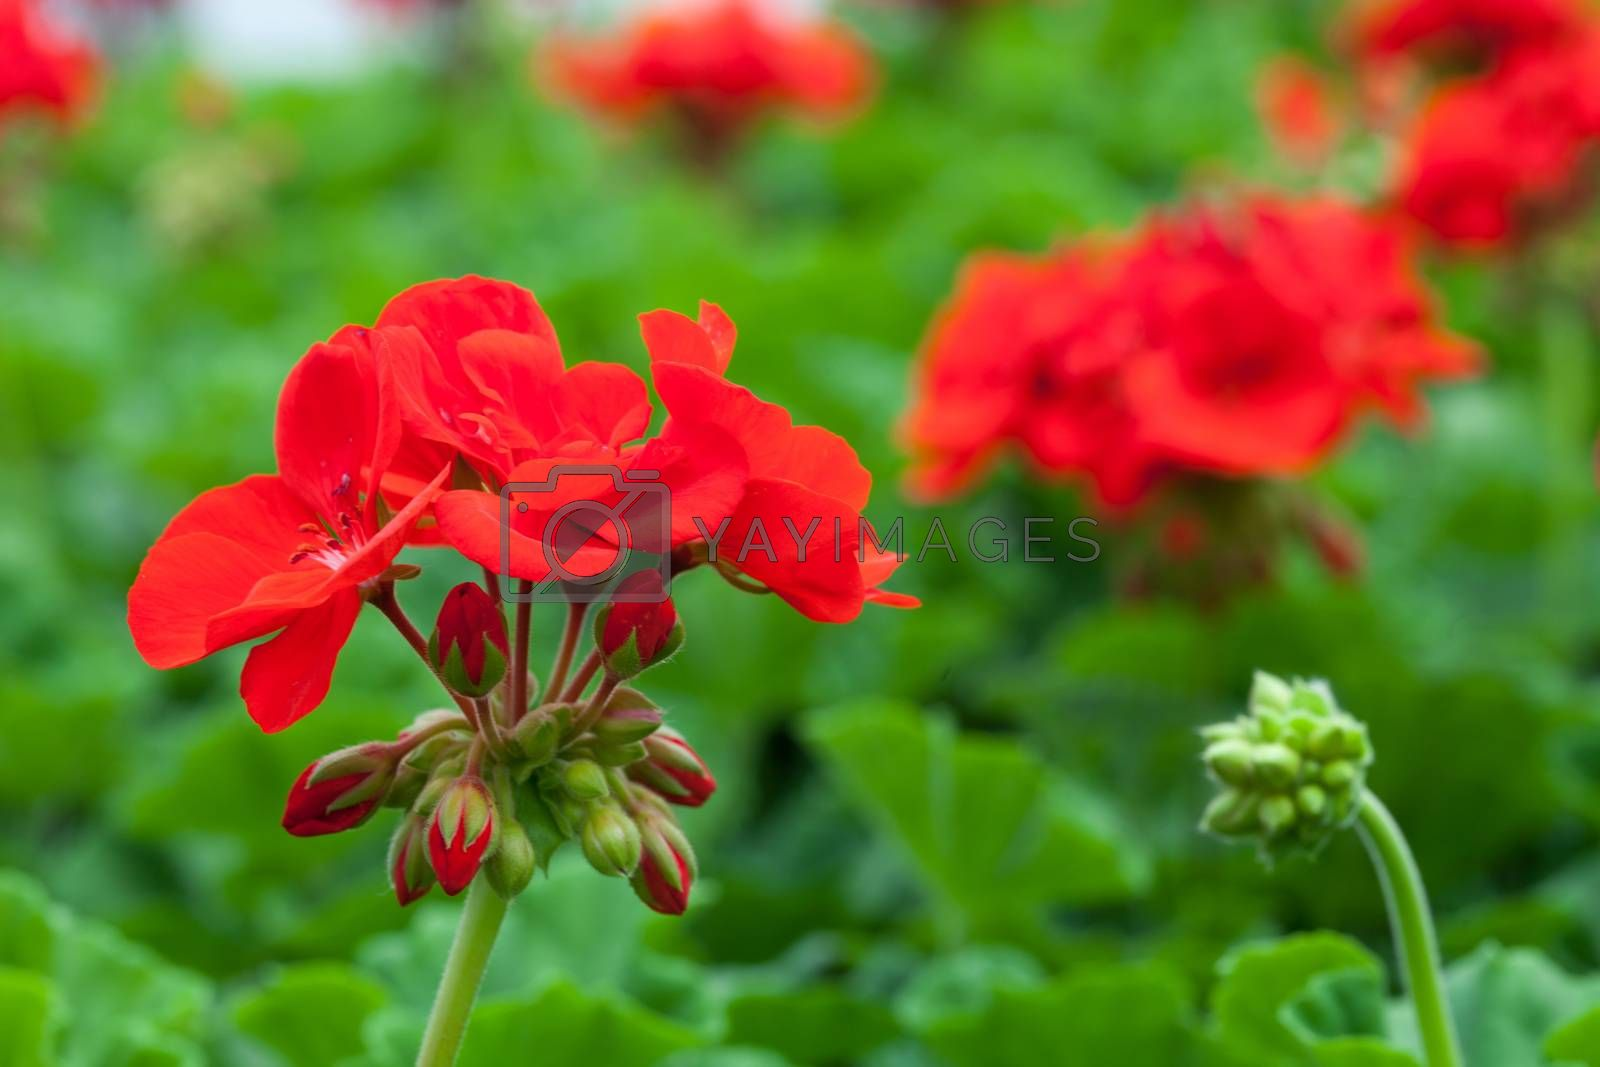 Macro closeup of some red flowers with a shallow depth of field.